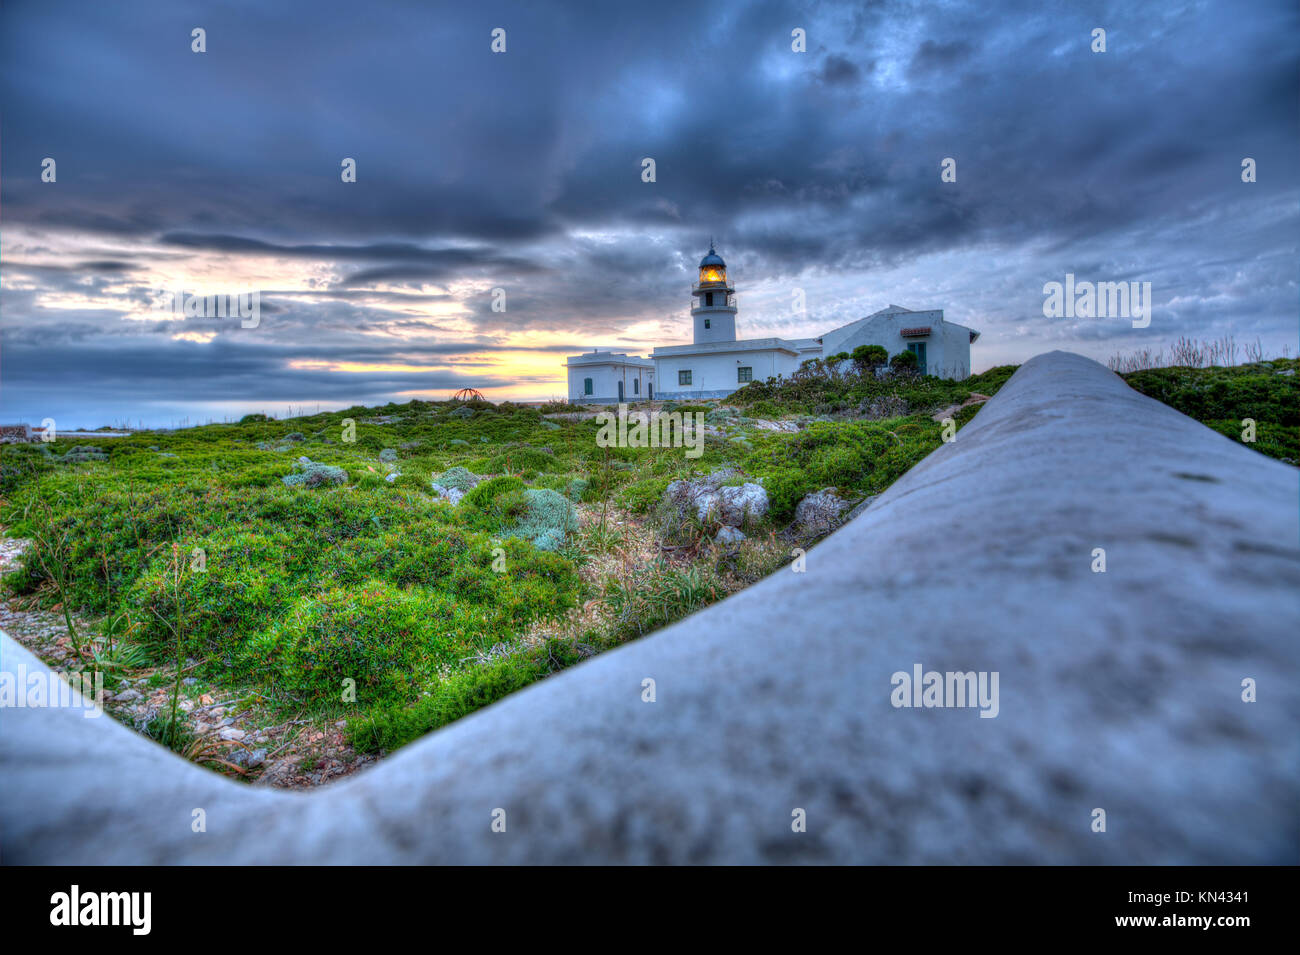 Menorca sunset in Faro Far de Caballeria Lighthouse at Balearic Islands es Mercadal. - Stock Image